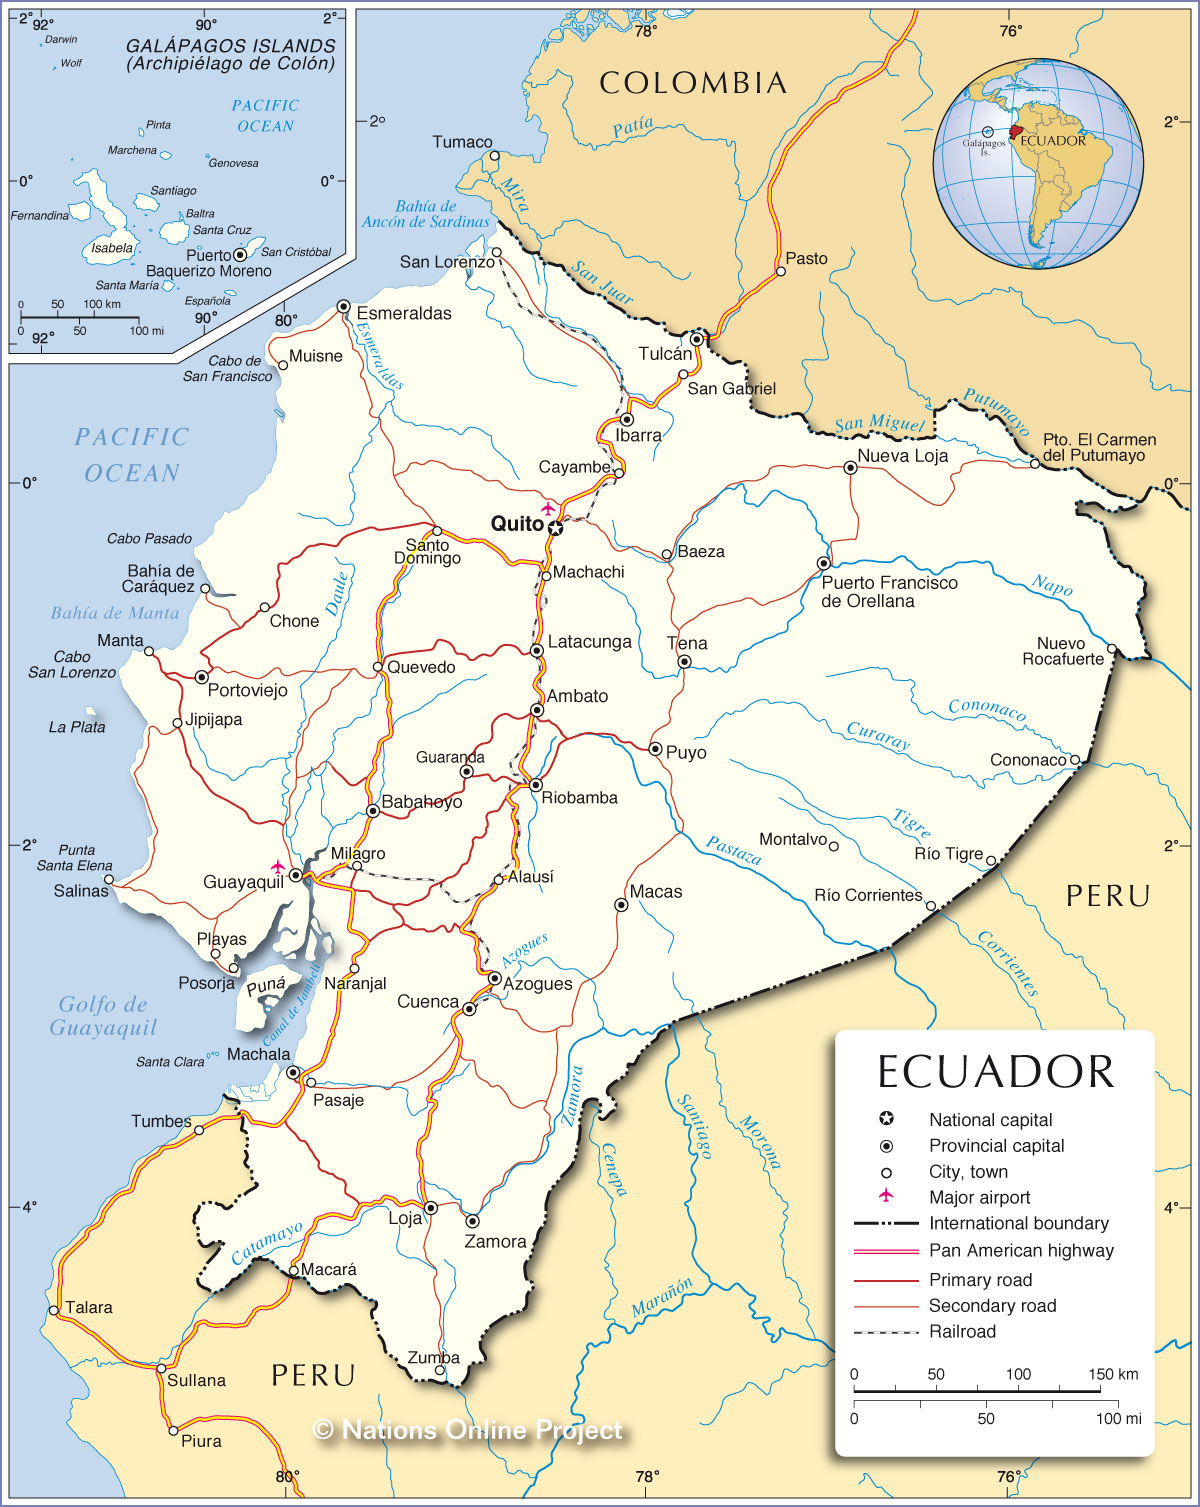 Location Of Ecuador On World Map.Political Map Of Ecuador Nations Online Project